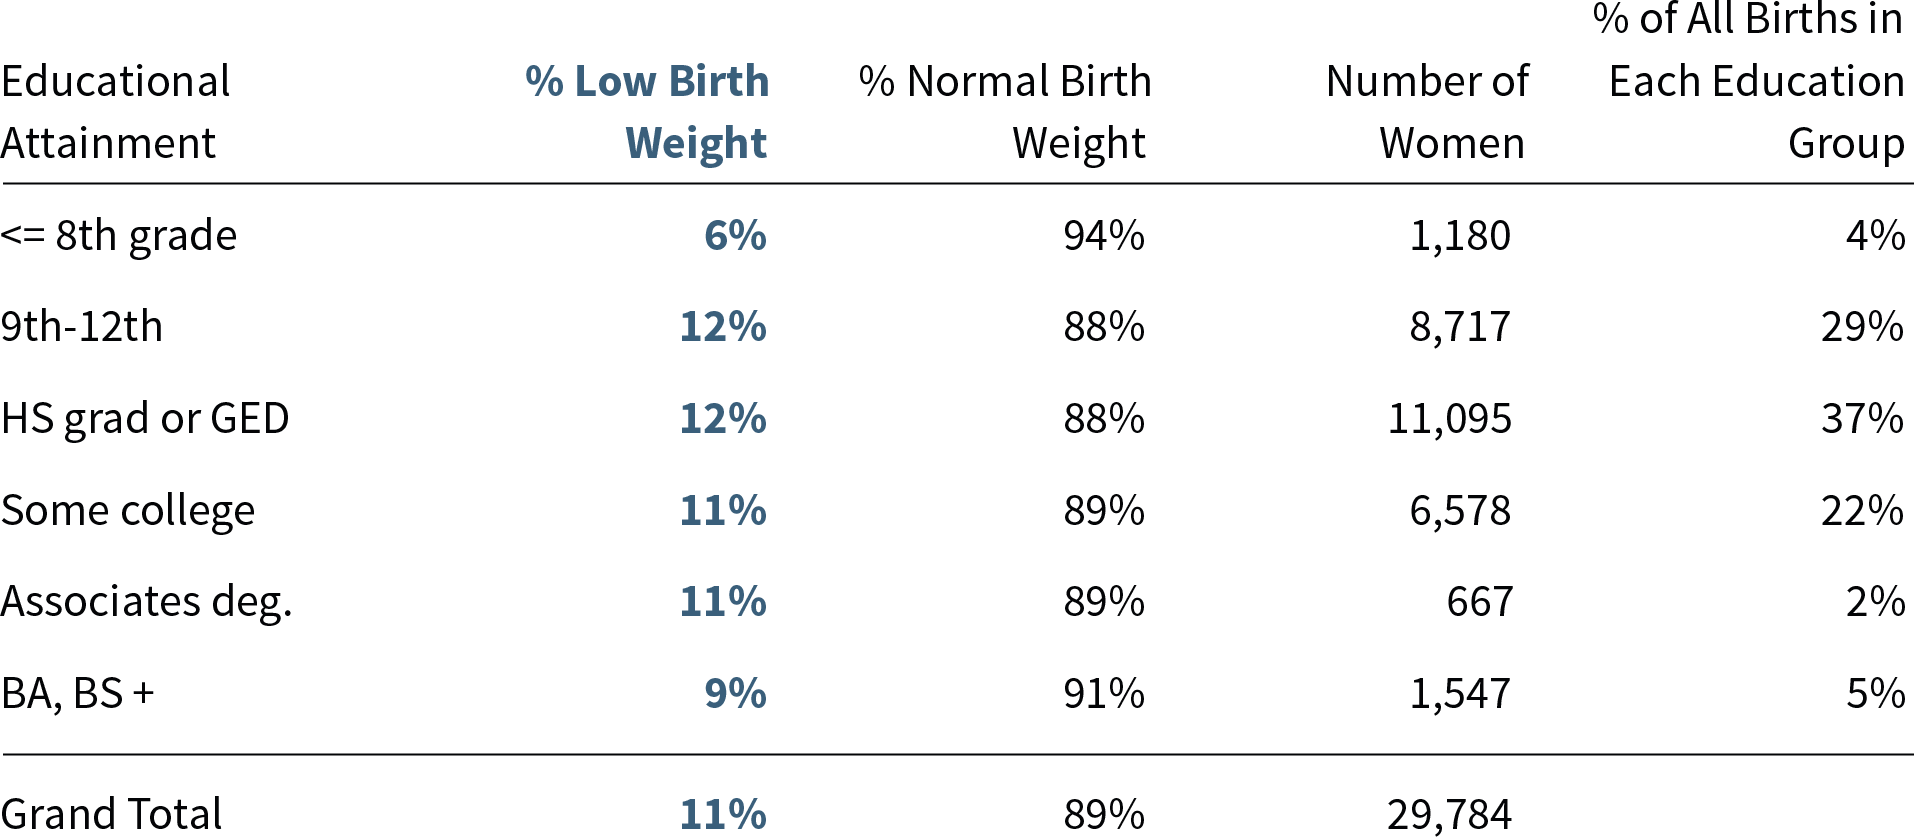 Data driven detroit moms place and low birth weight part 1 lbwpost1table2 1betcityfo Images